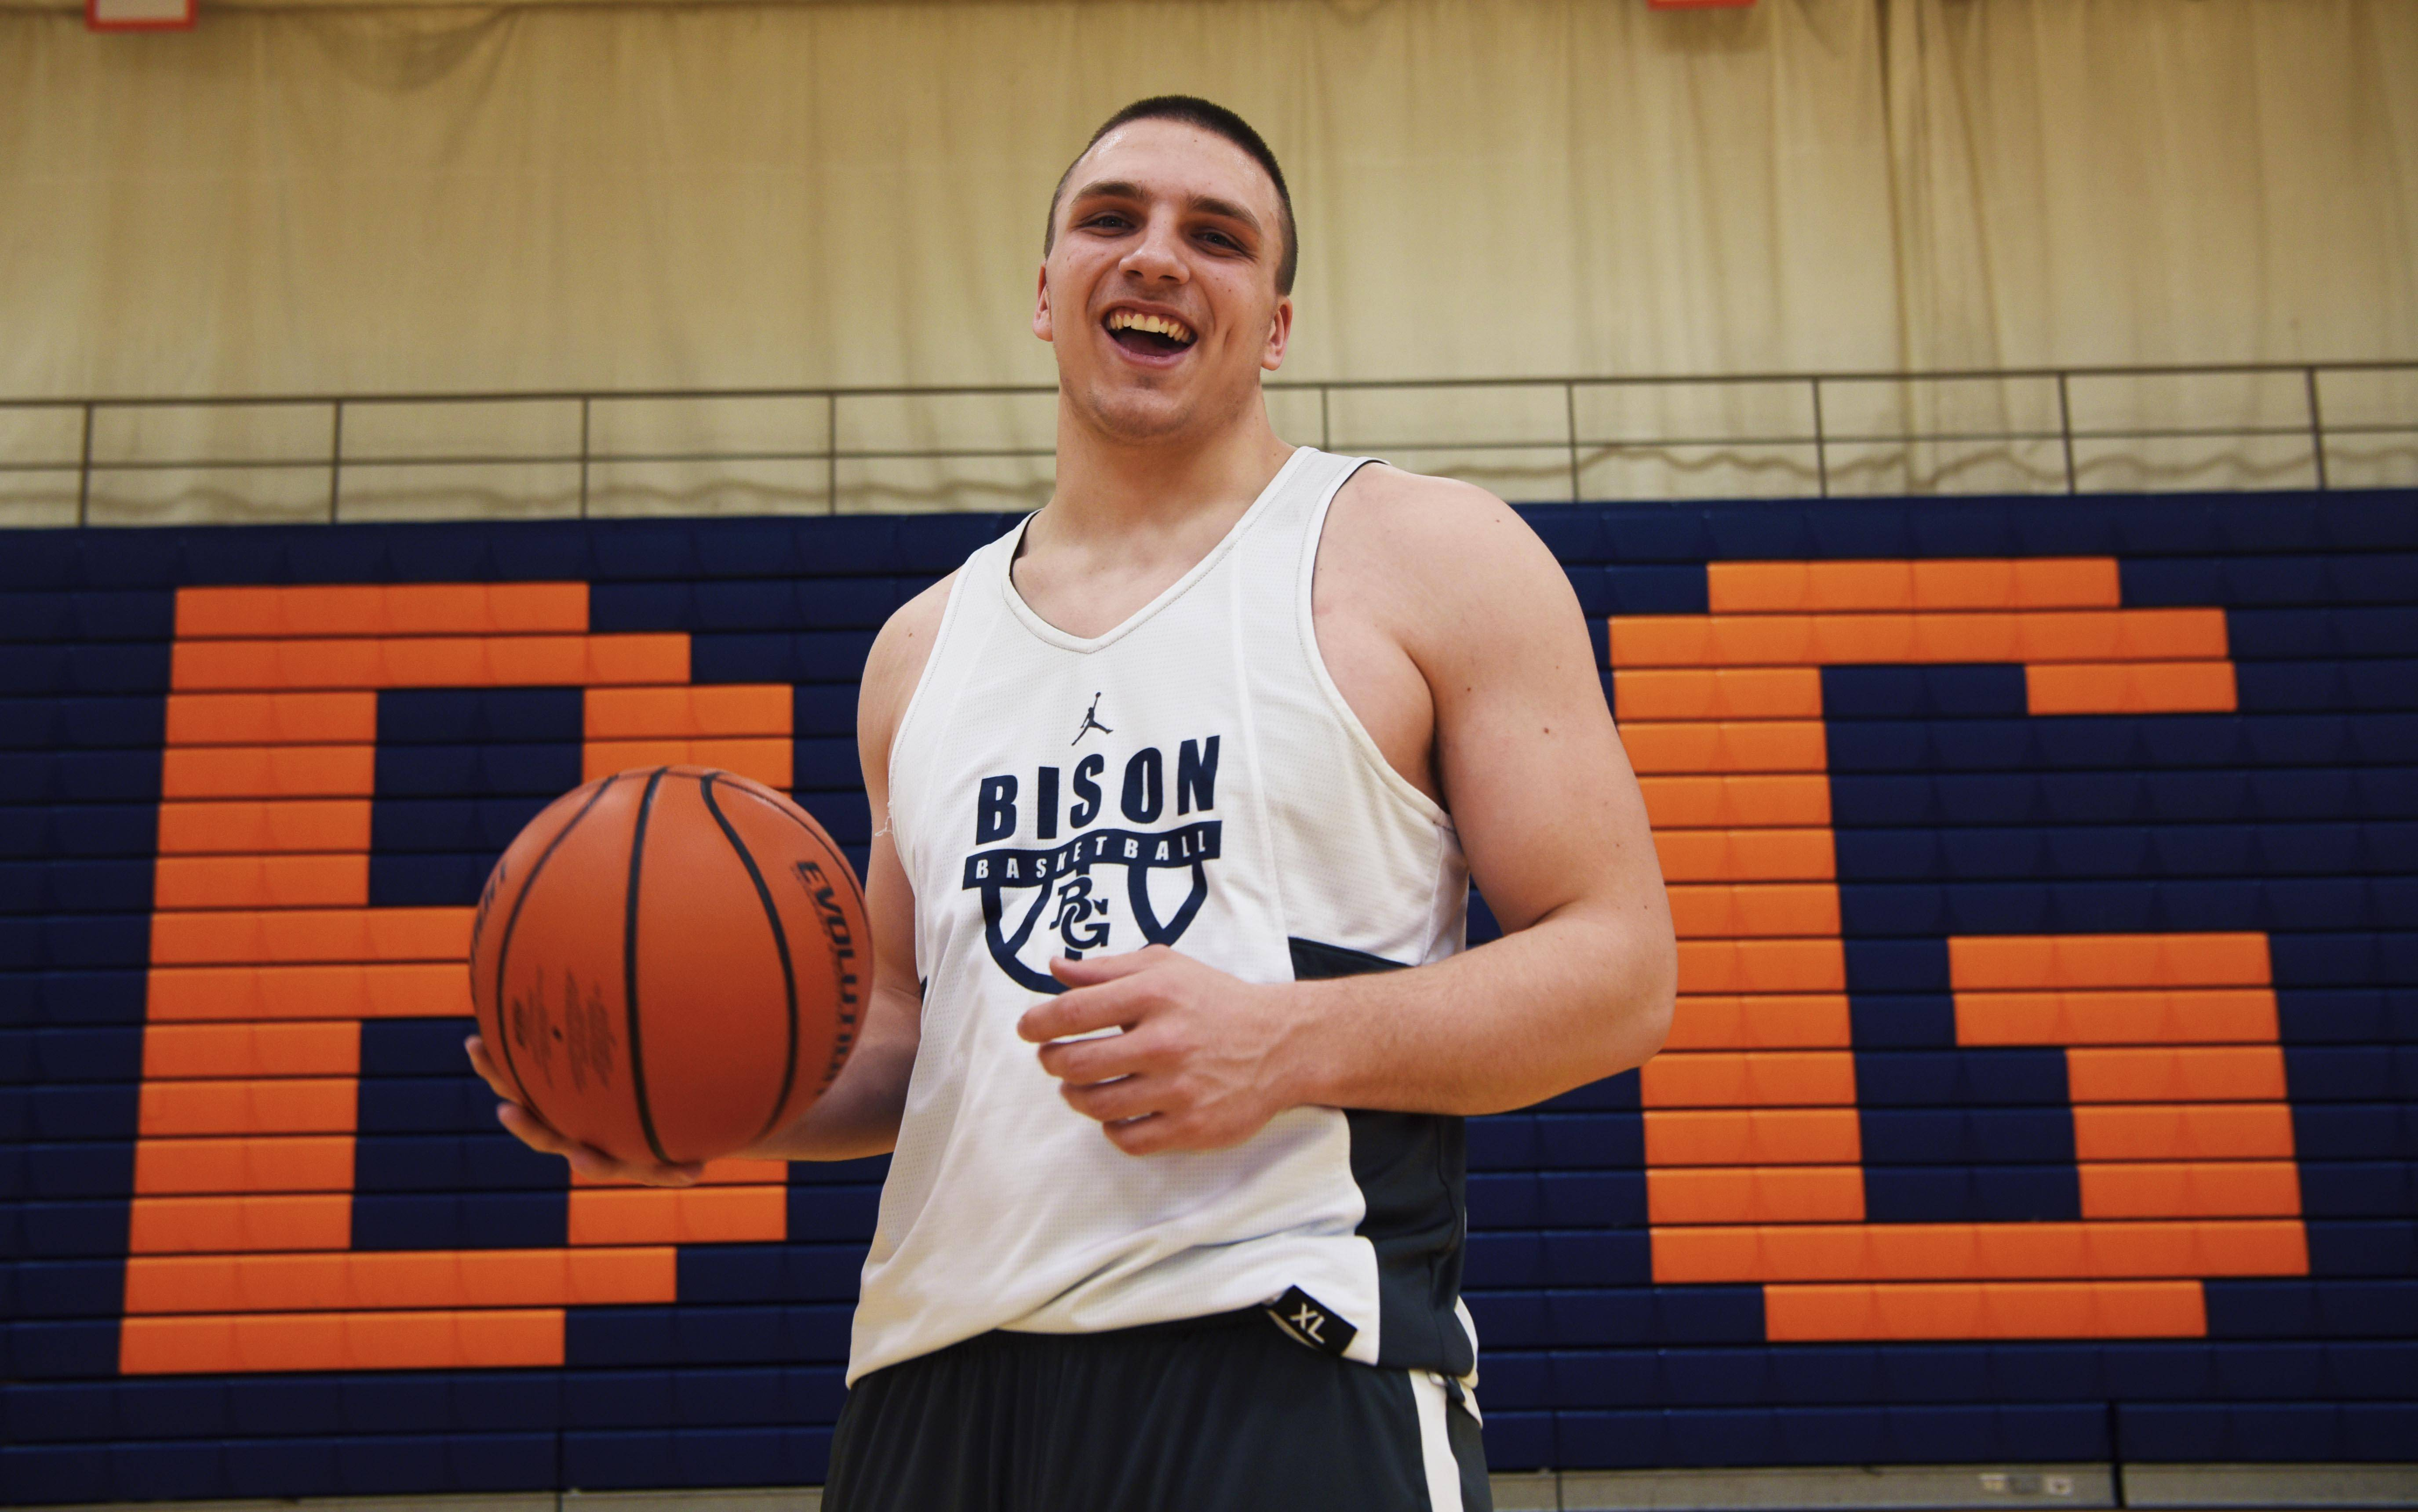 Buffalo Grove boys basketball player Tom Trieb has overcome a football injury to become a mainstay for the Bison on the court this winter.